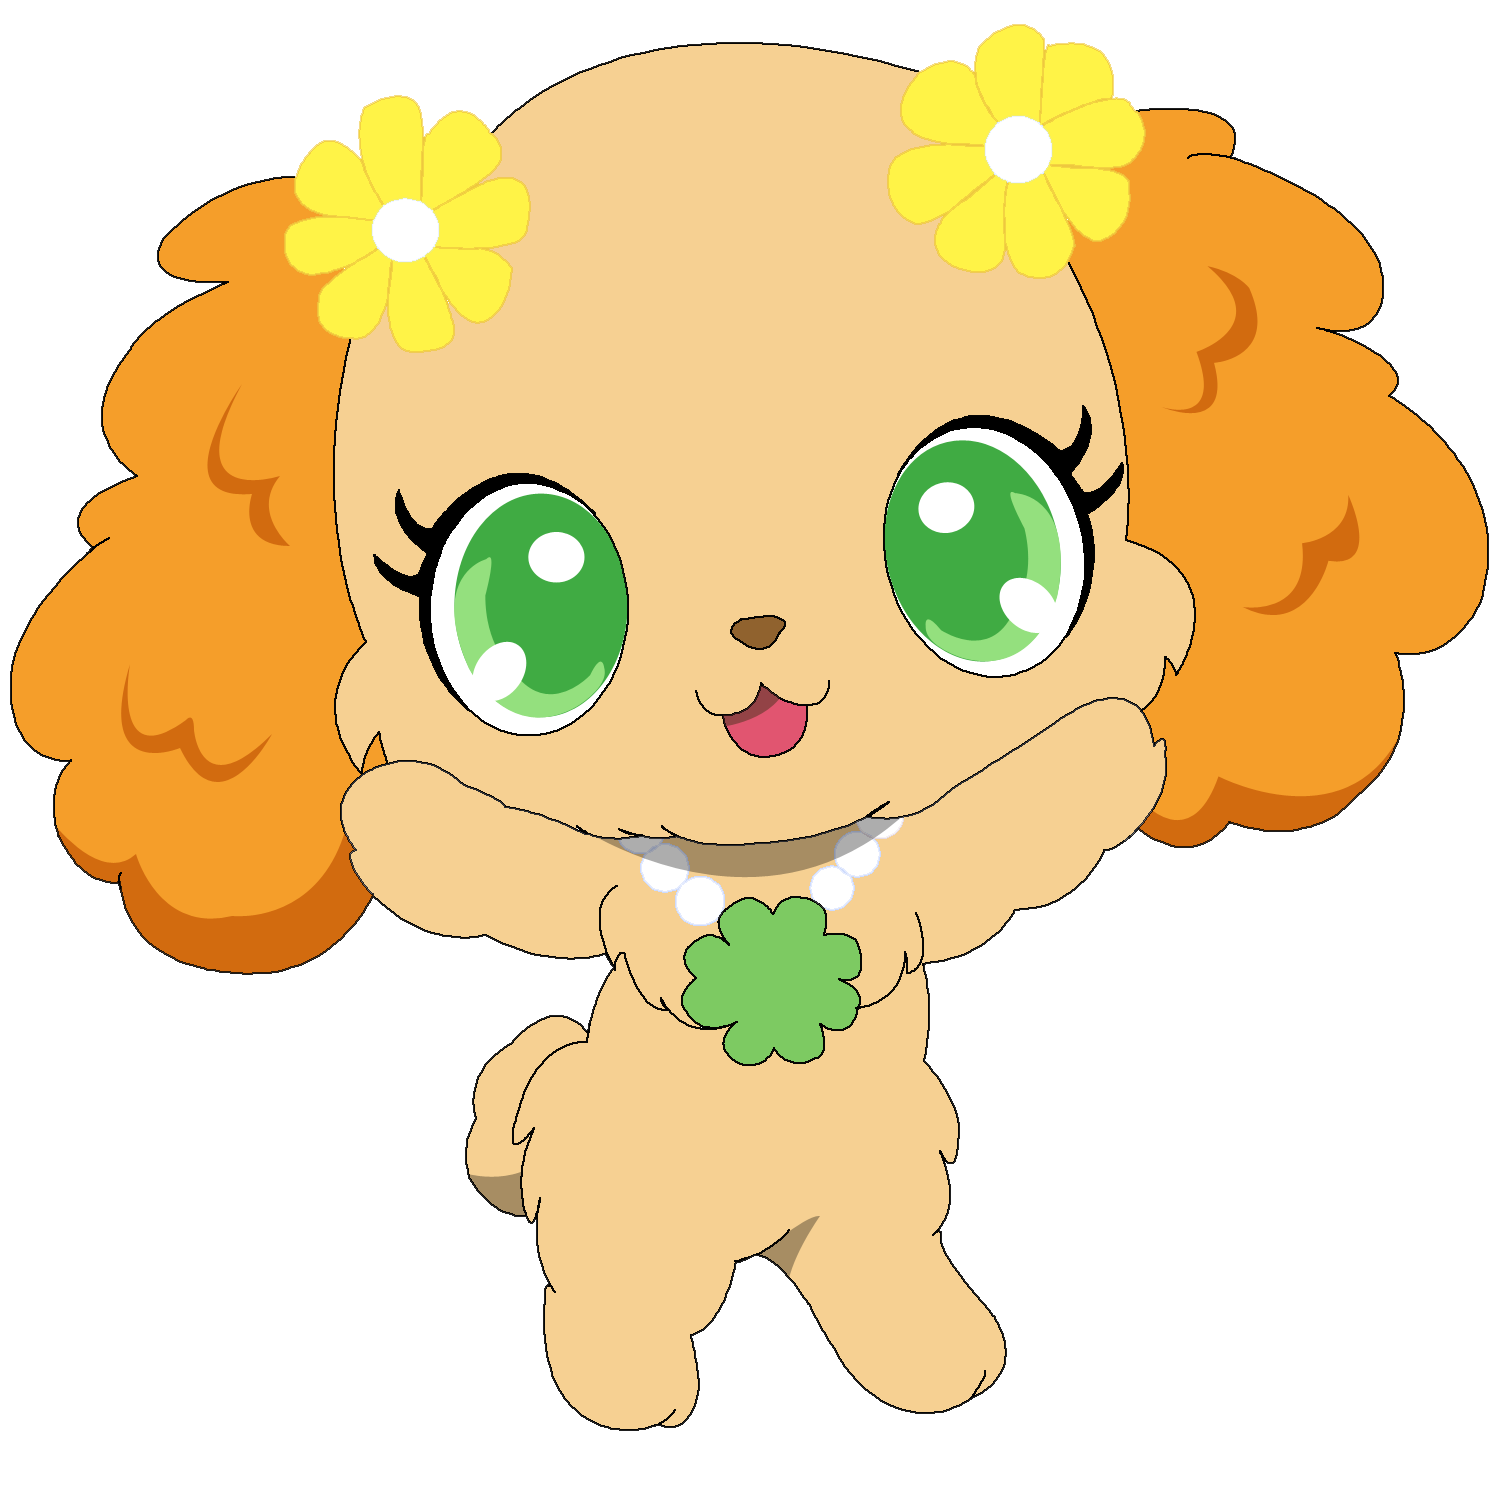 Image jewel pet wiki fandom powered by wikia - Jewelpet prase ...